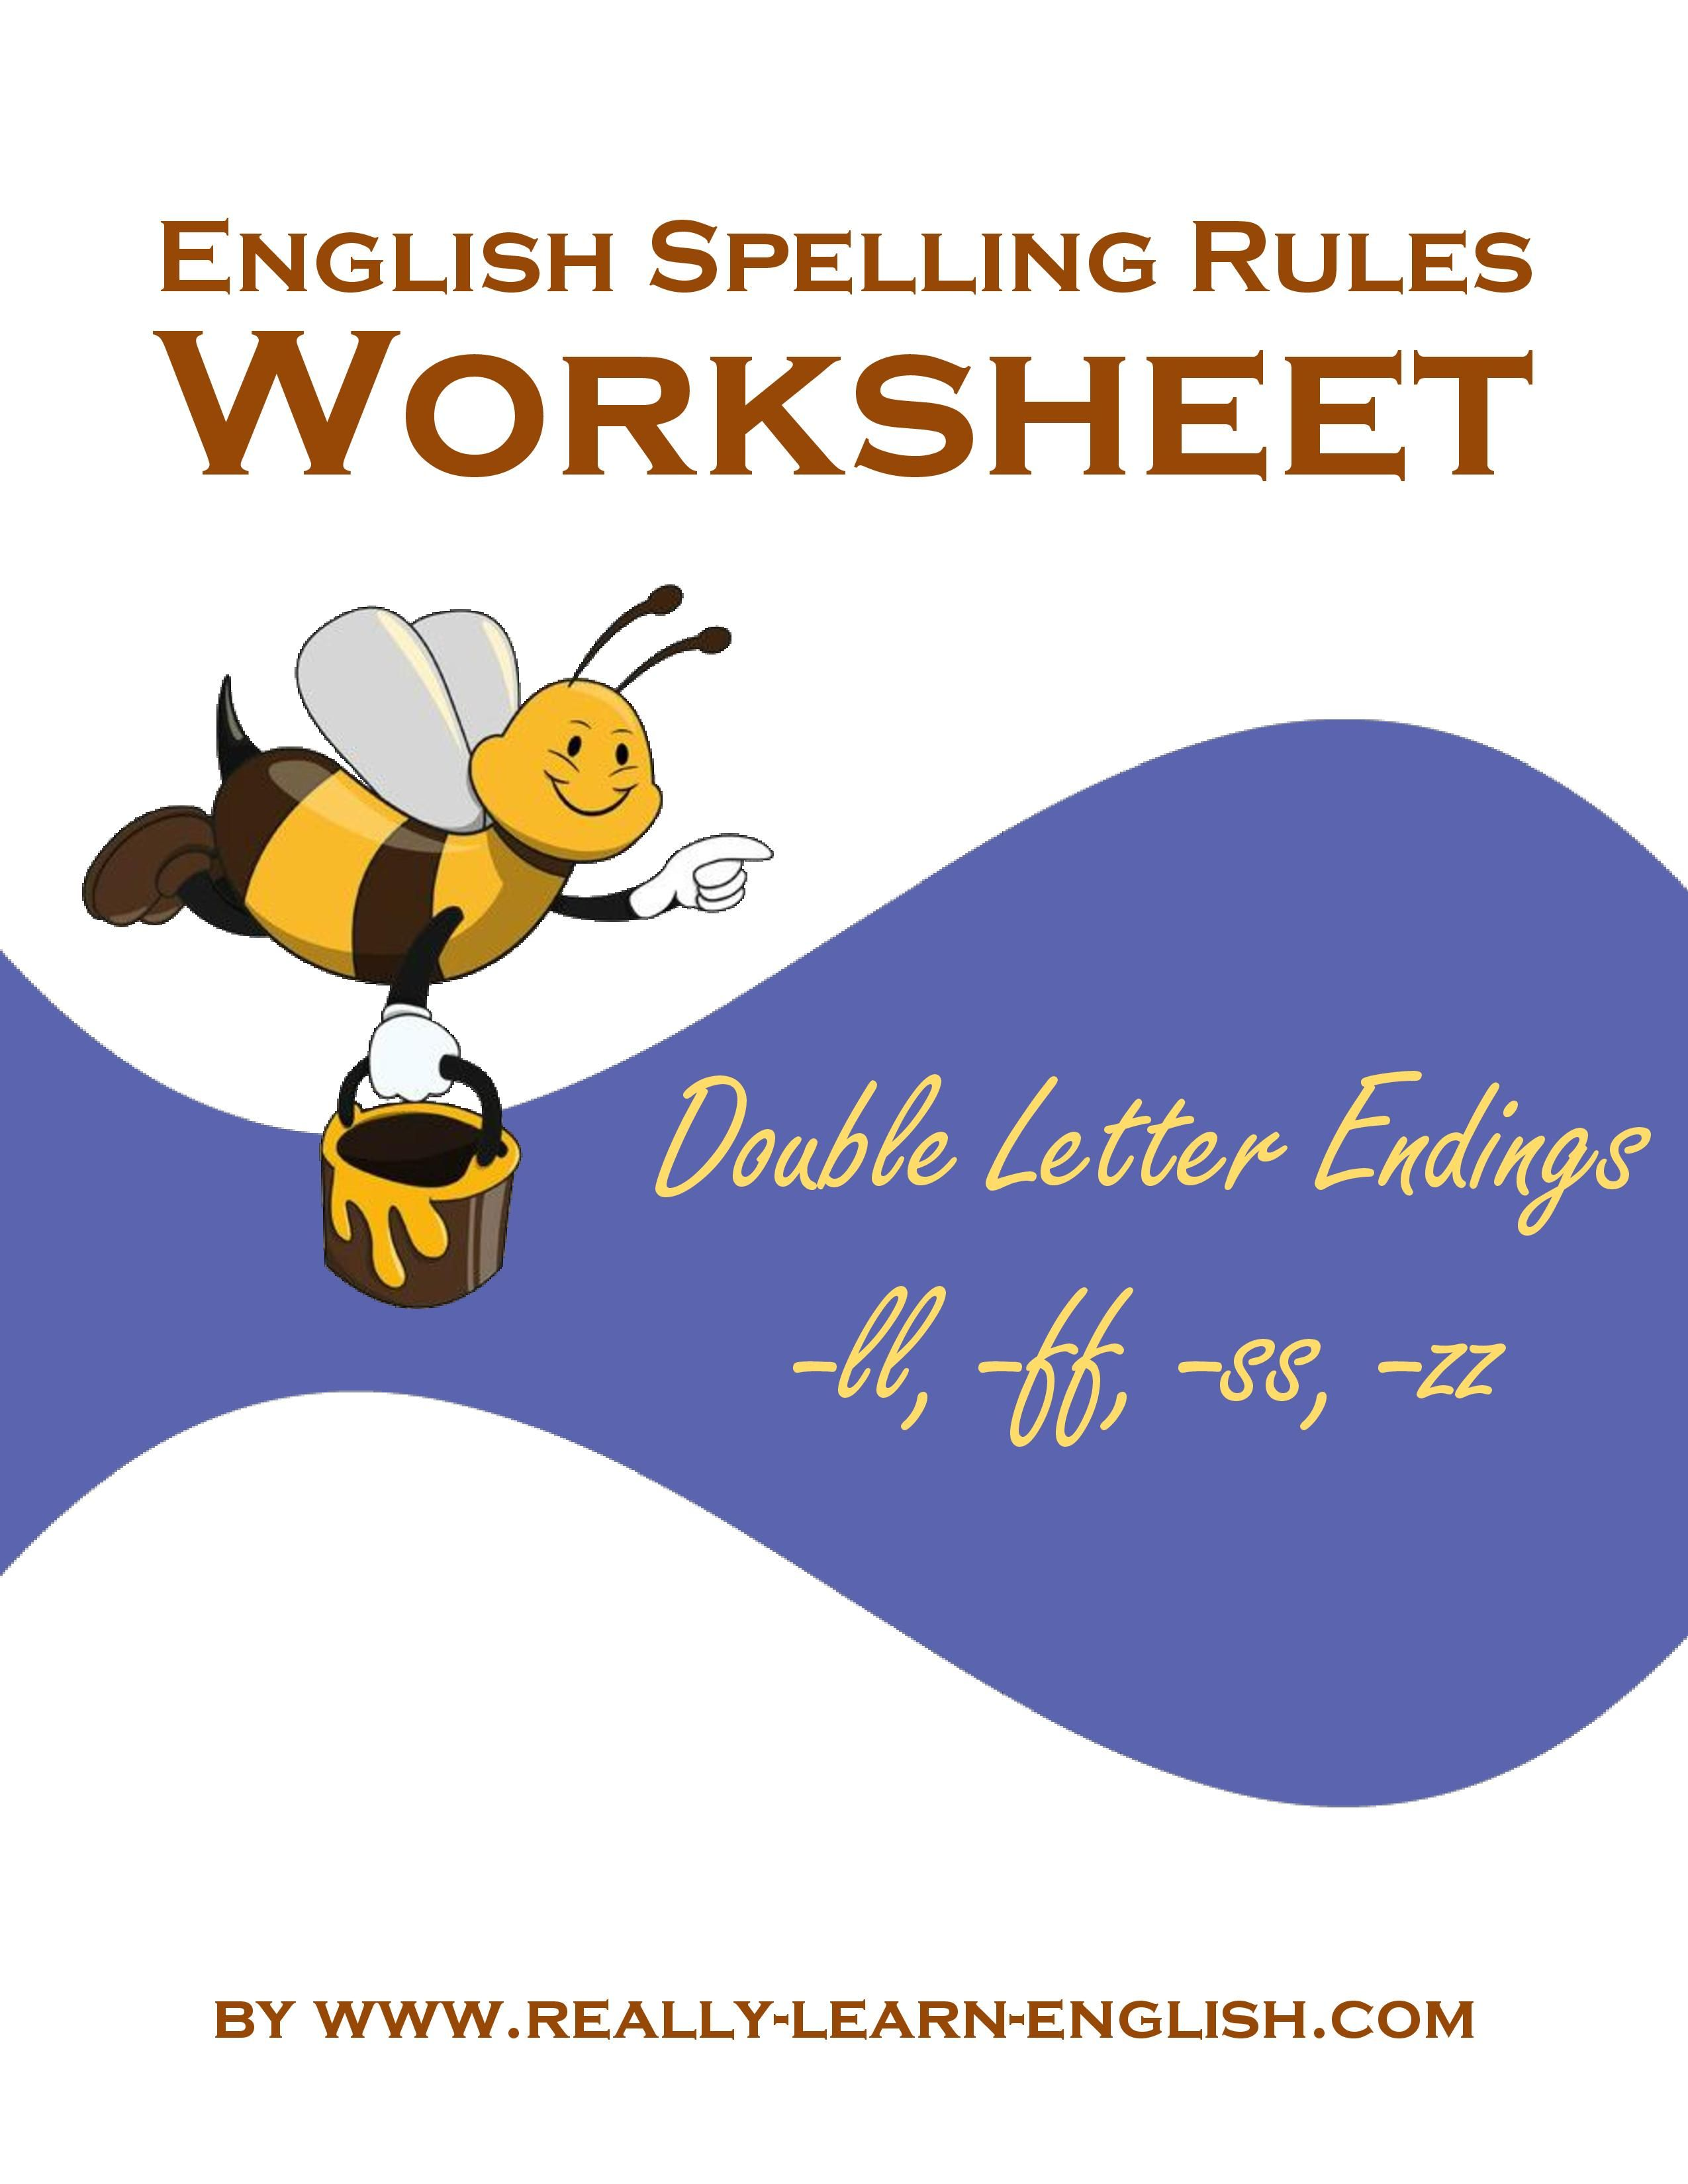 English Spelling Rules Printable Worksheets Rule 12